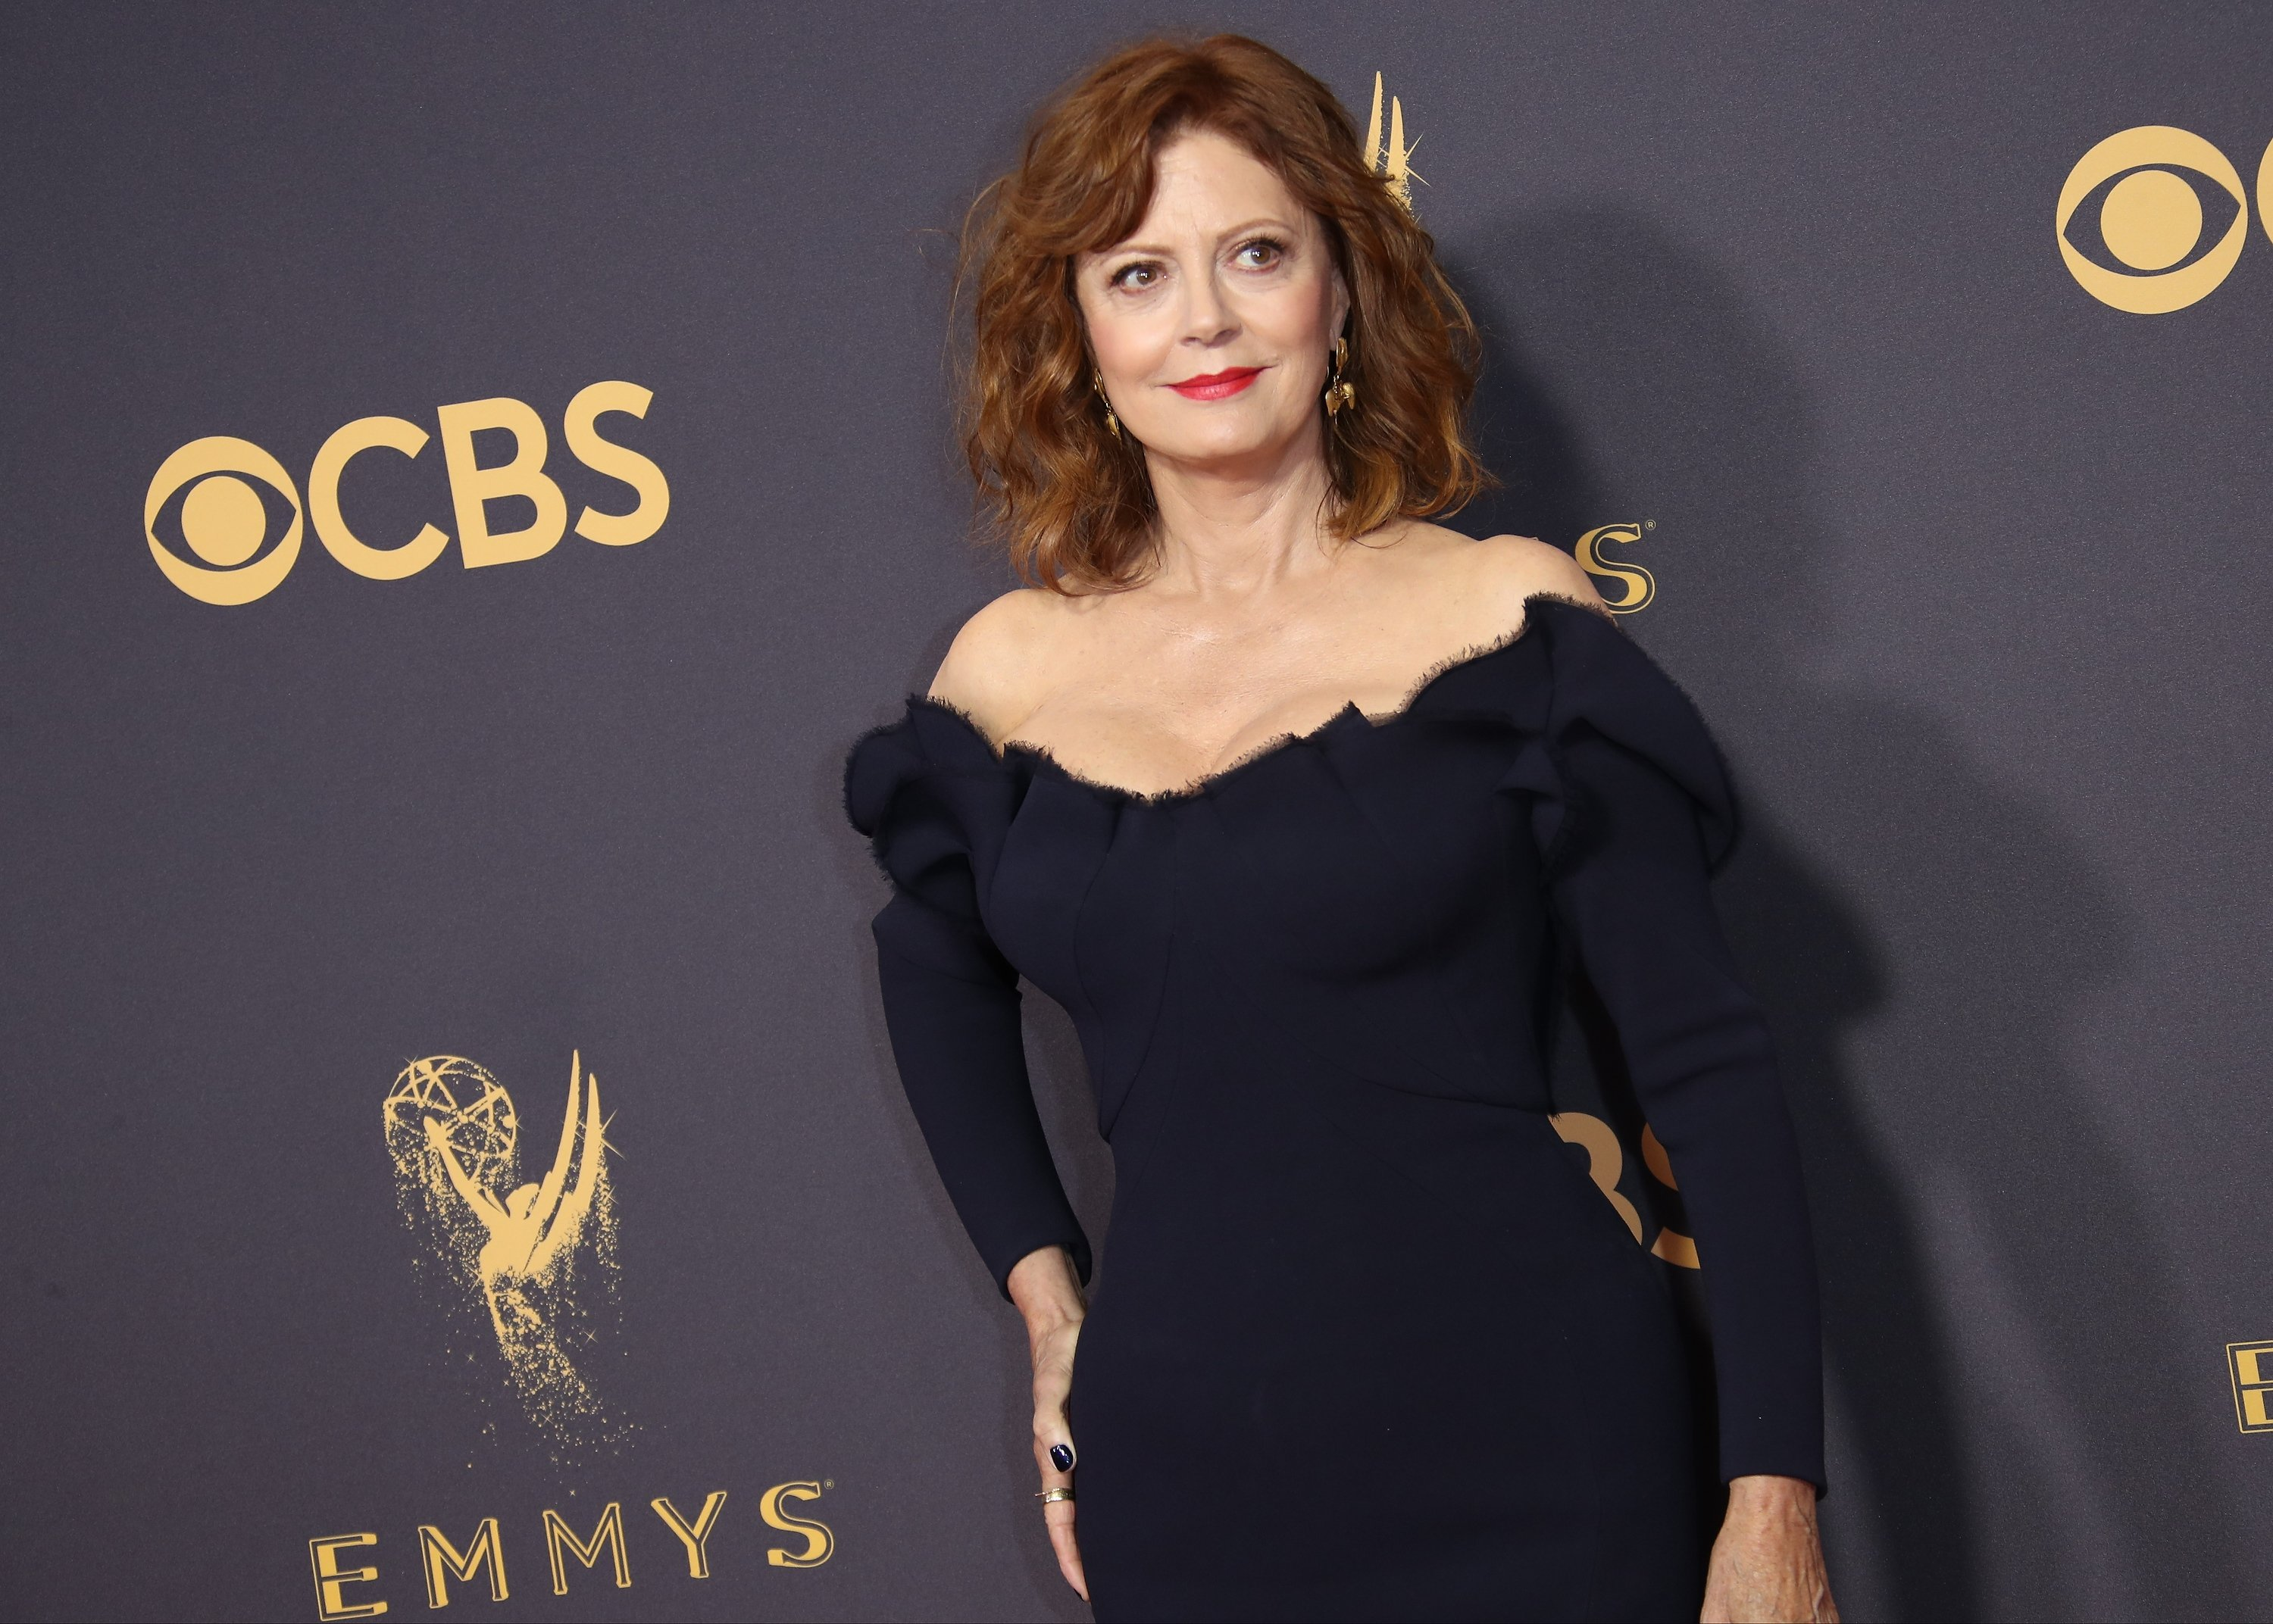 Susan Sarandon at the Emmy Awards | Photo: Getty Images